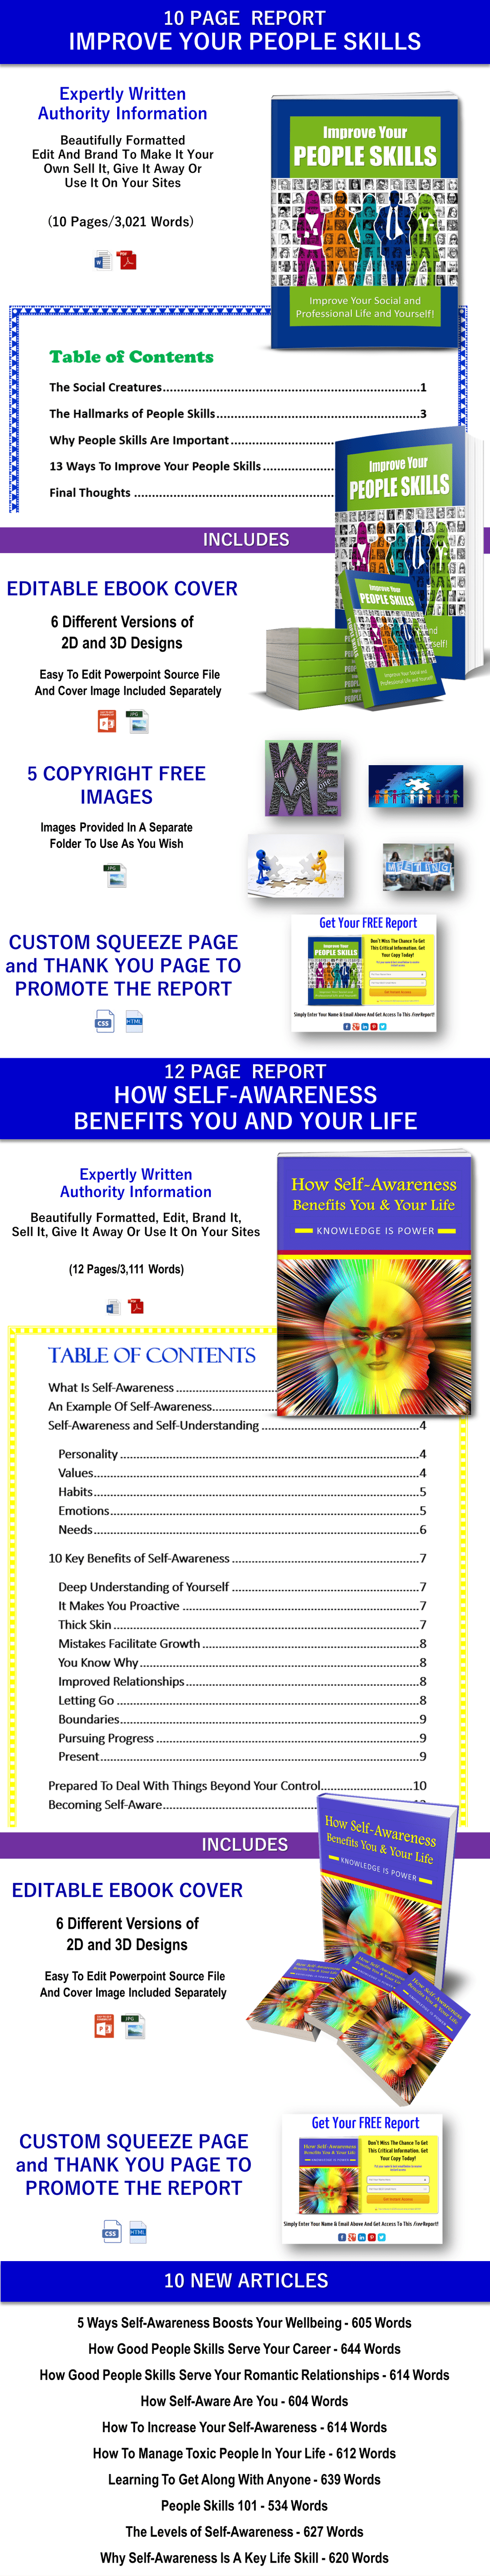 People Skills and Self-Awareness PLR